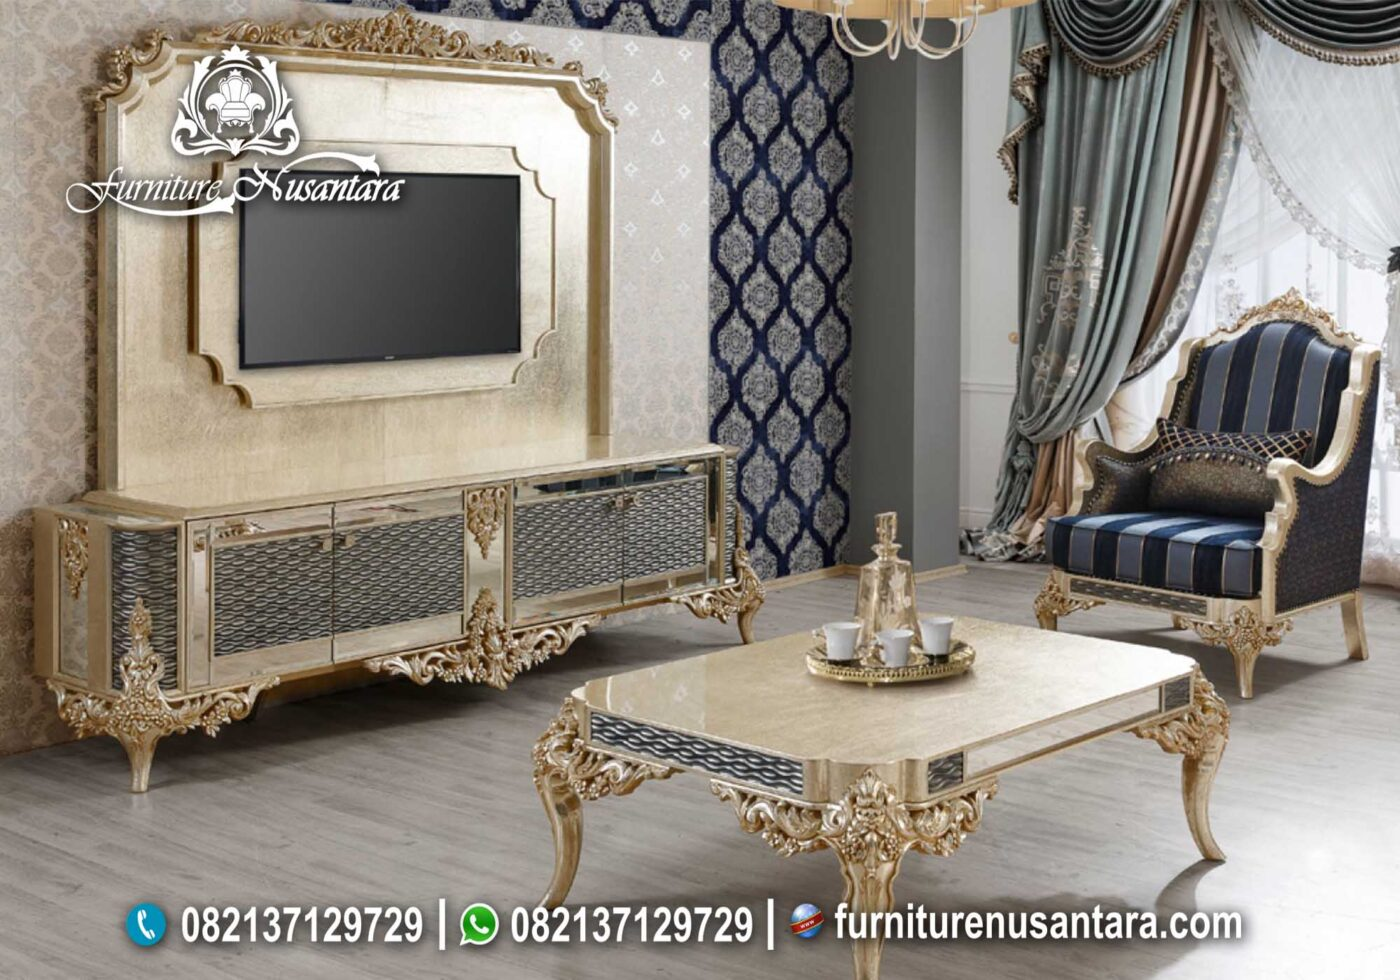 Backdrop TV Klasik Full Gold Turki BTV-15